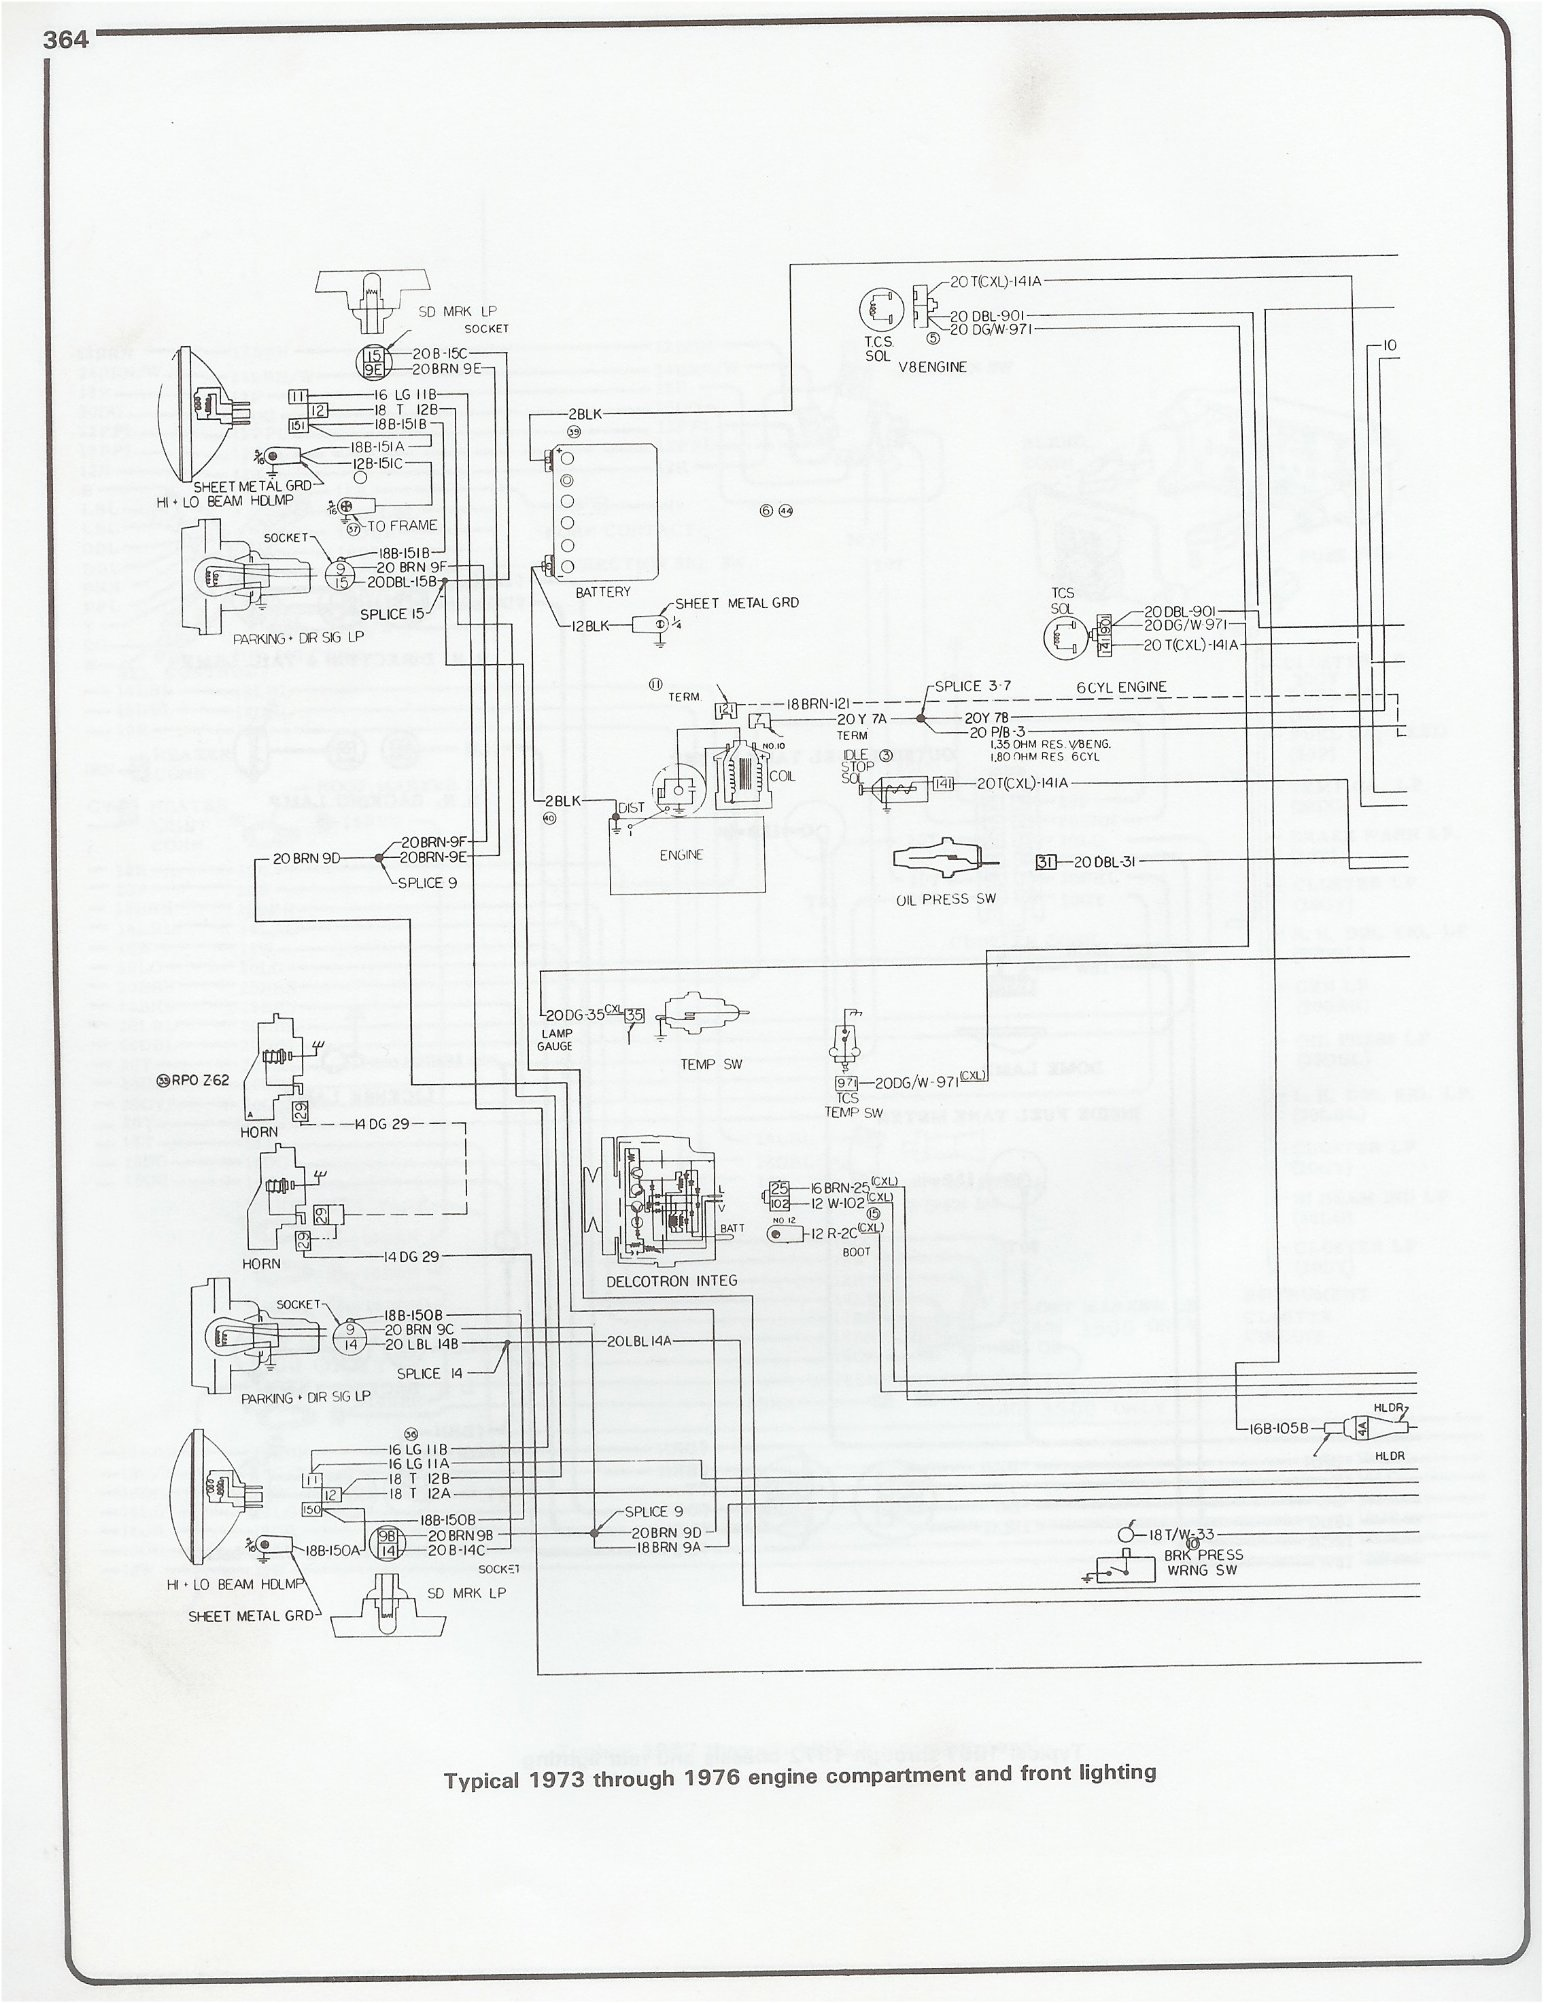 76 Chevy Engine Wiring Harness Diagram Diagrams 2006 Colorado Factory Audio Electrical Only Page 2 Truck Forum 06